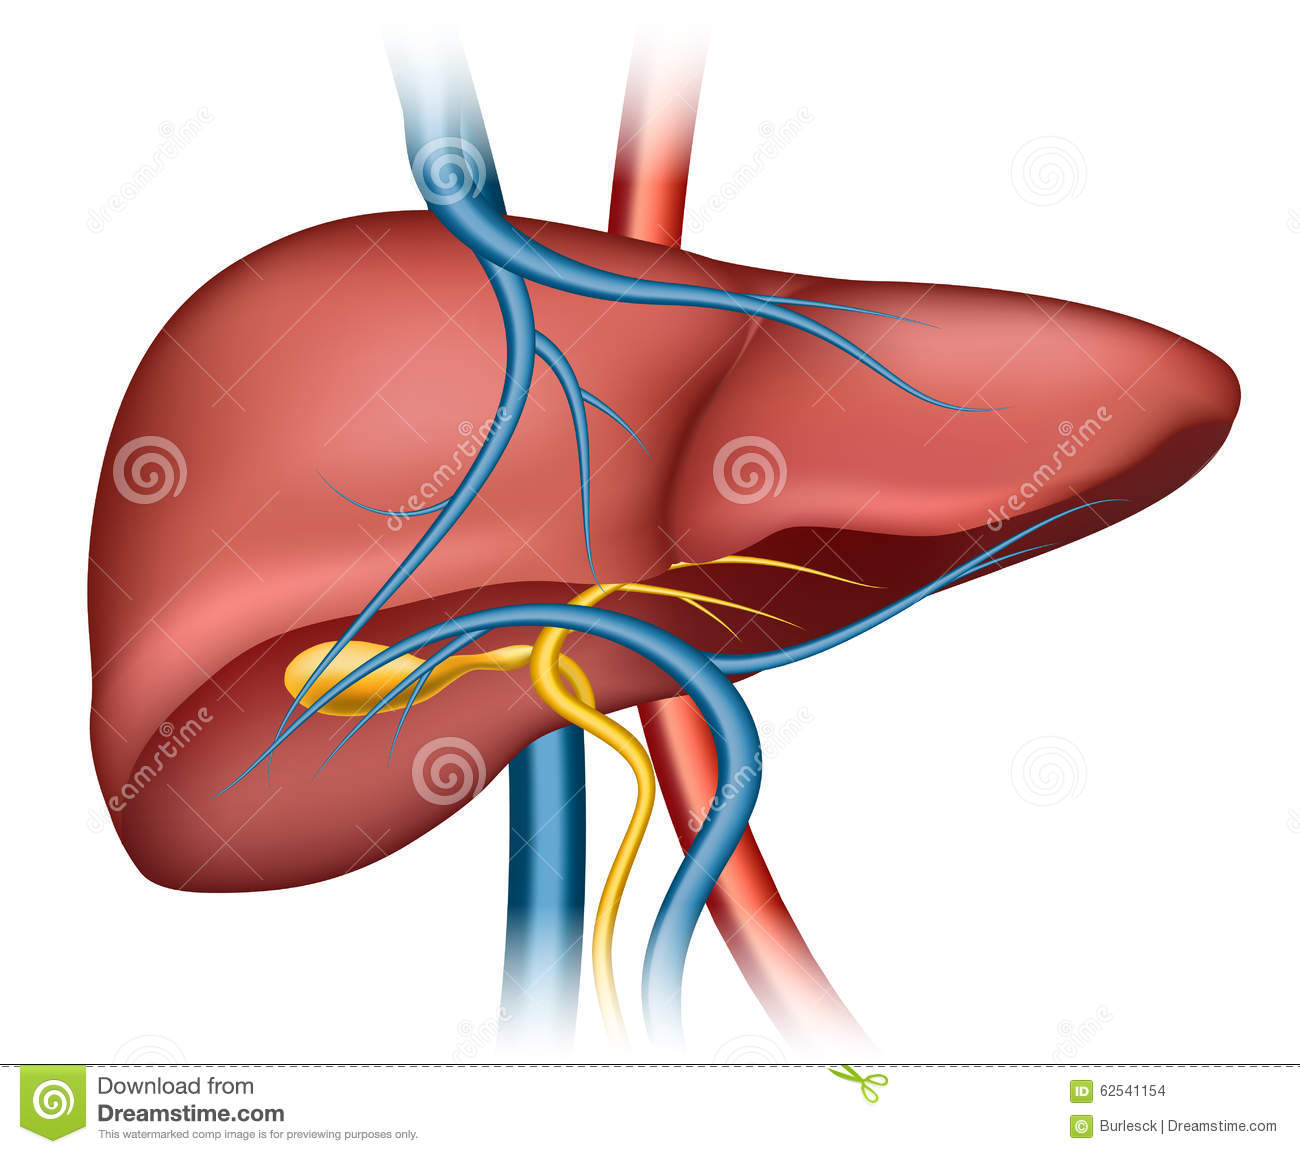 Human liver structure stock vector. Illustration of ...